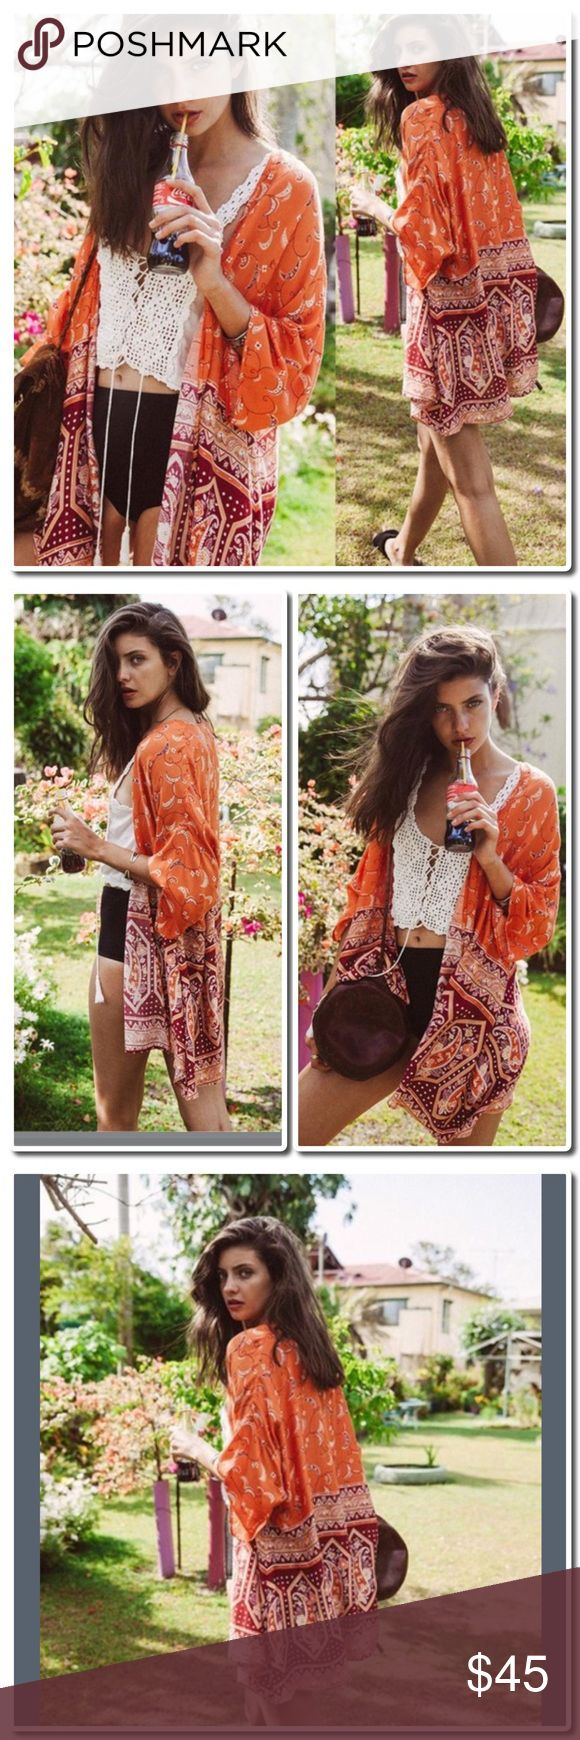 COMING SOON Floral Chiffon Kimono Beautiful Chiffon Kimono - Perfect for  Summer - Great as a beach Cover Up- Gorgeous Colors Tops